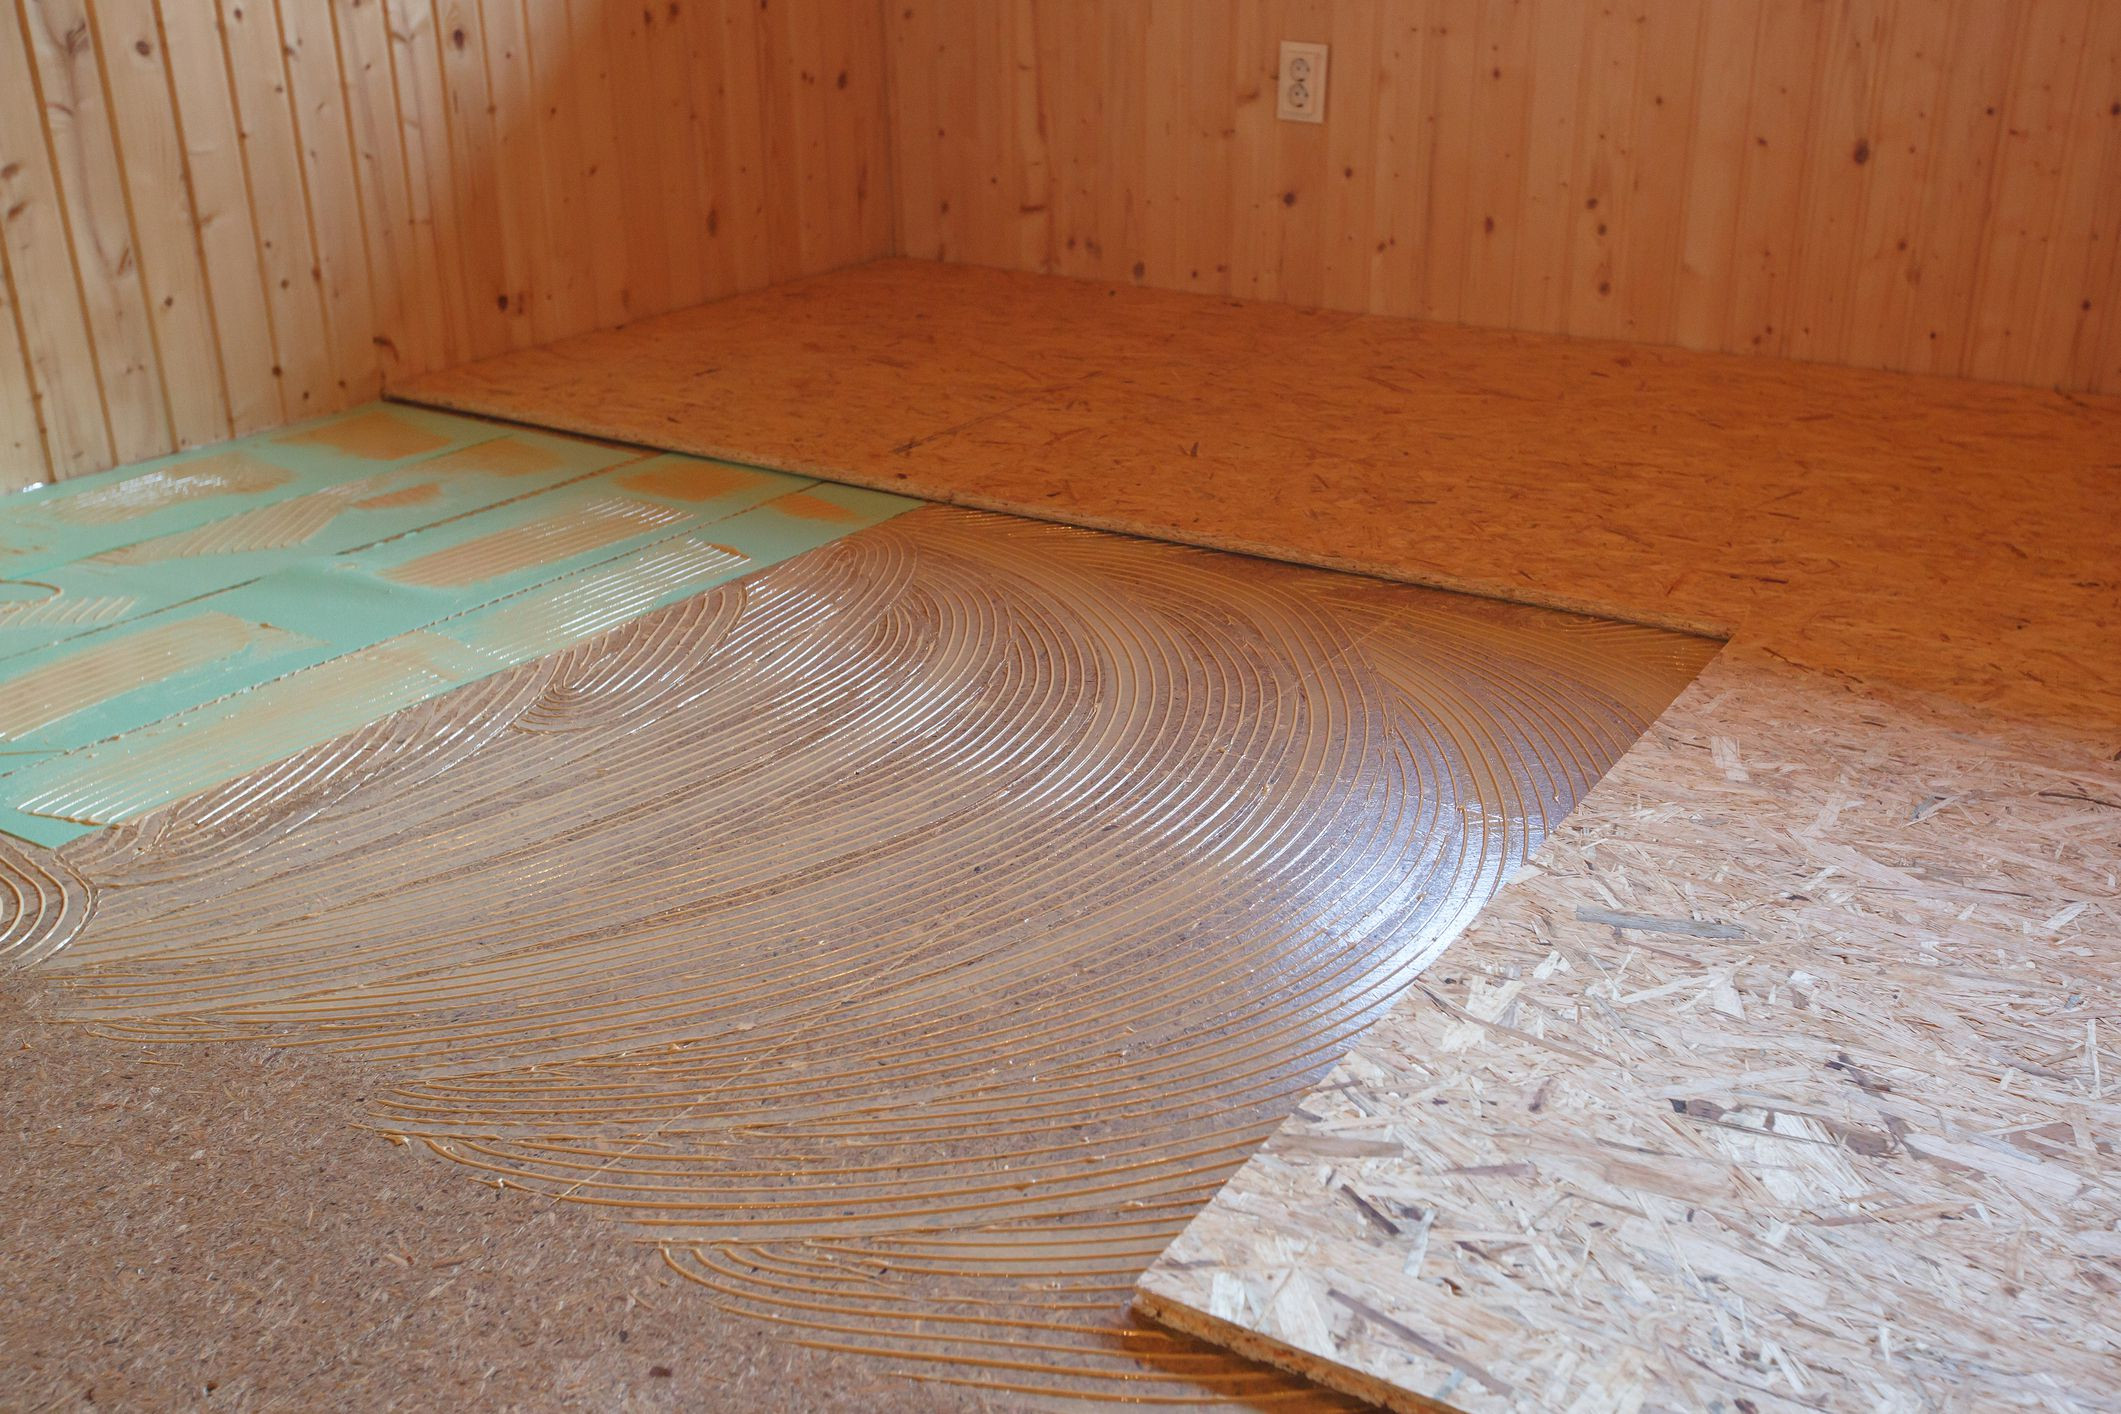 how to install hardwood floors on wood subfloor of types of subfloor materials in construction projects inside gettyimages 892047030 5af5f46fc064710036eebd22